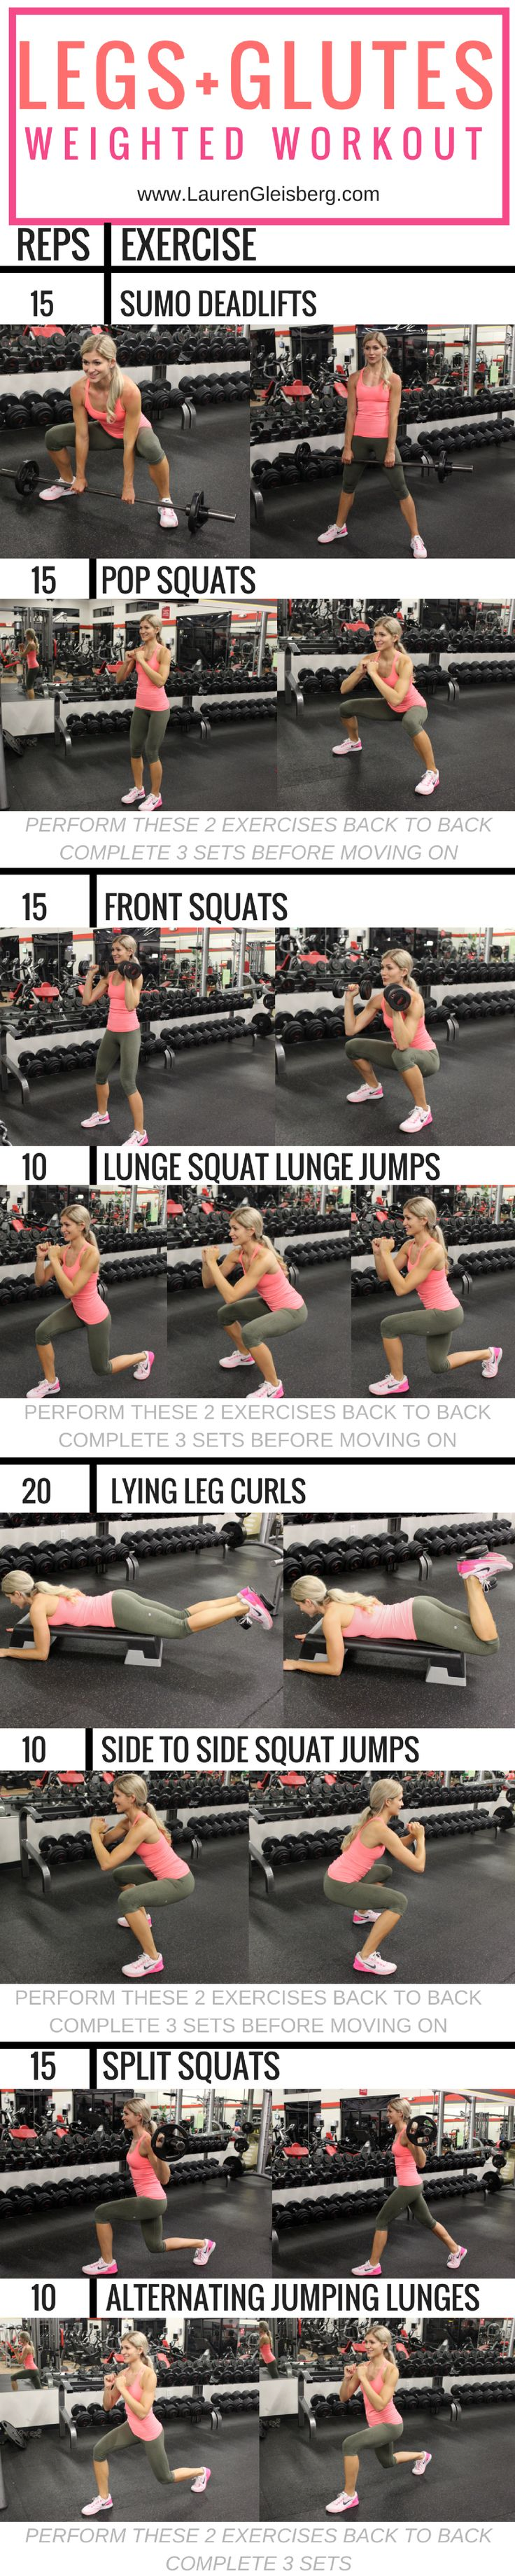 LGTeamKini Week 5 Day 1-LEGS   GLUTES WORKOUT